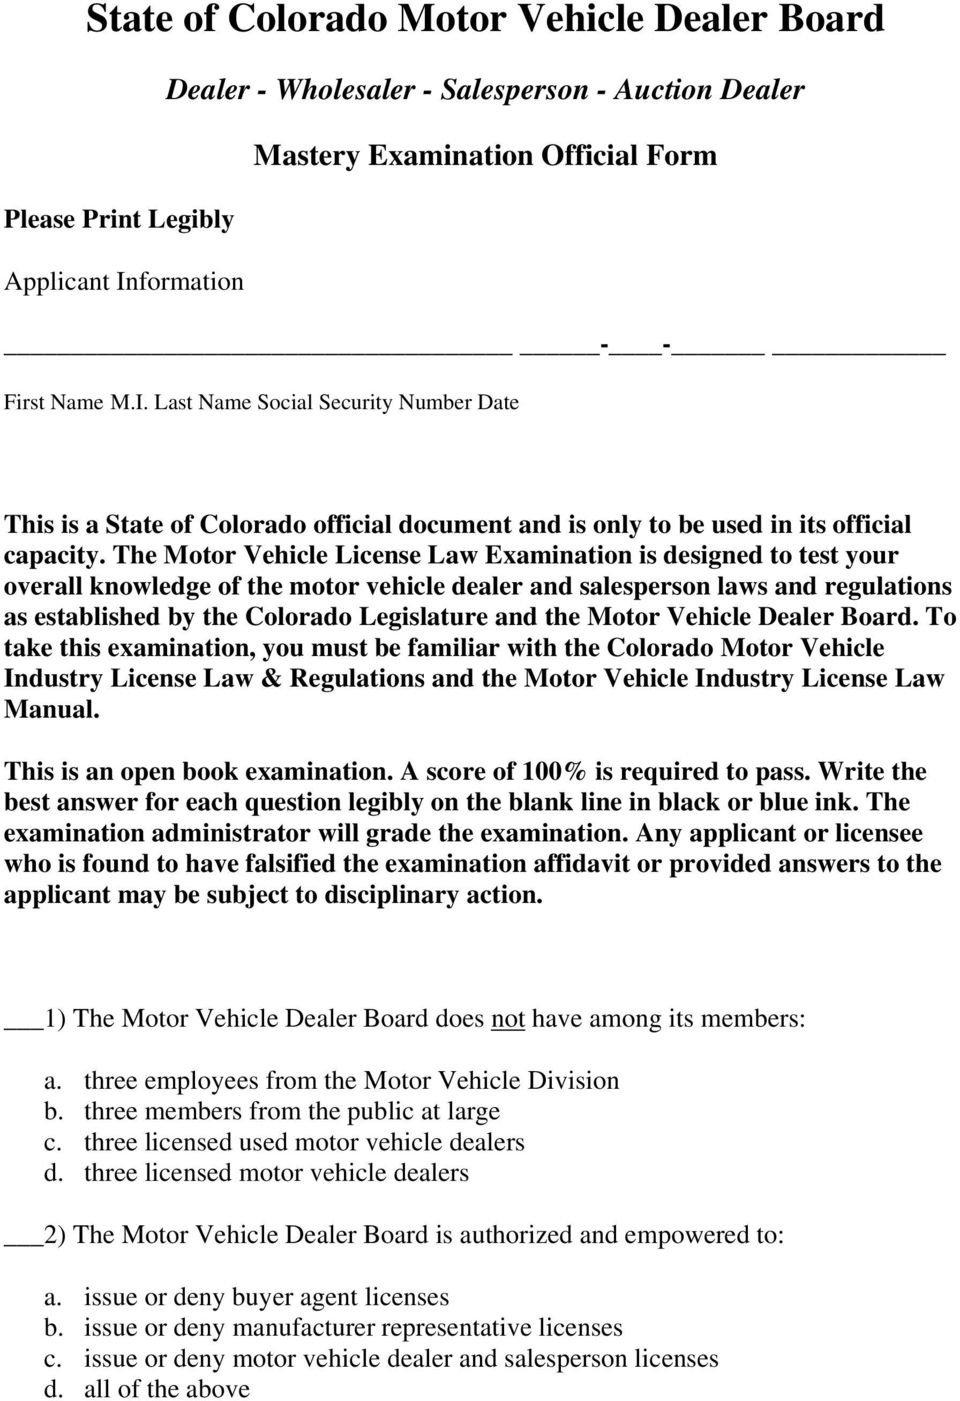 The Motor Vehicle License Law Examination is designed to test your overall knowledge of the motor vehicle dealer and salesperson laws and regulations as established by the Colorado Legislature and